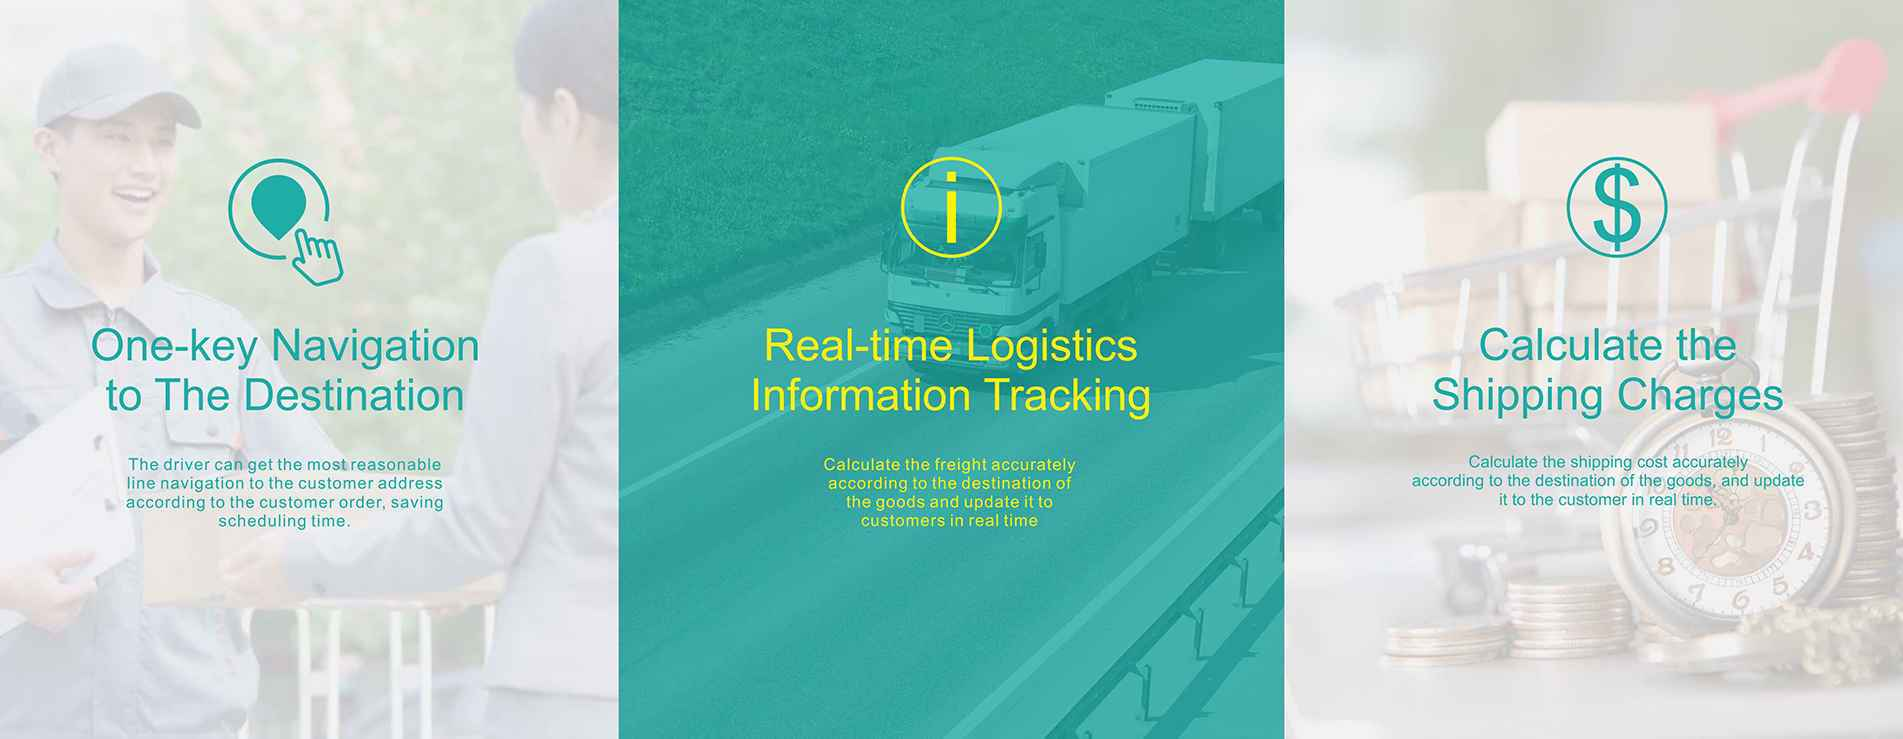 real time logistics information tracking